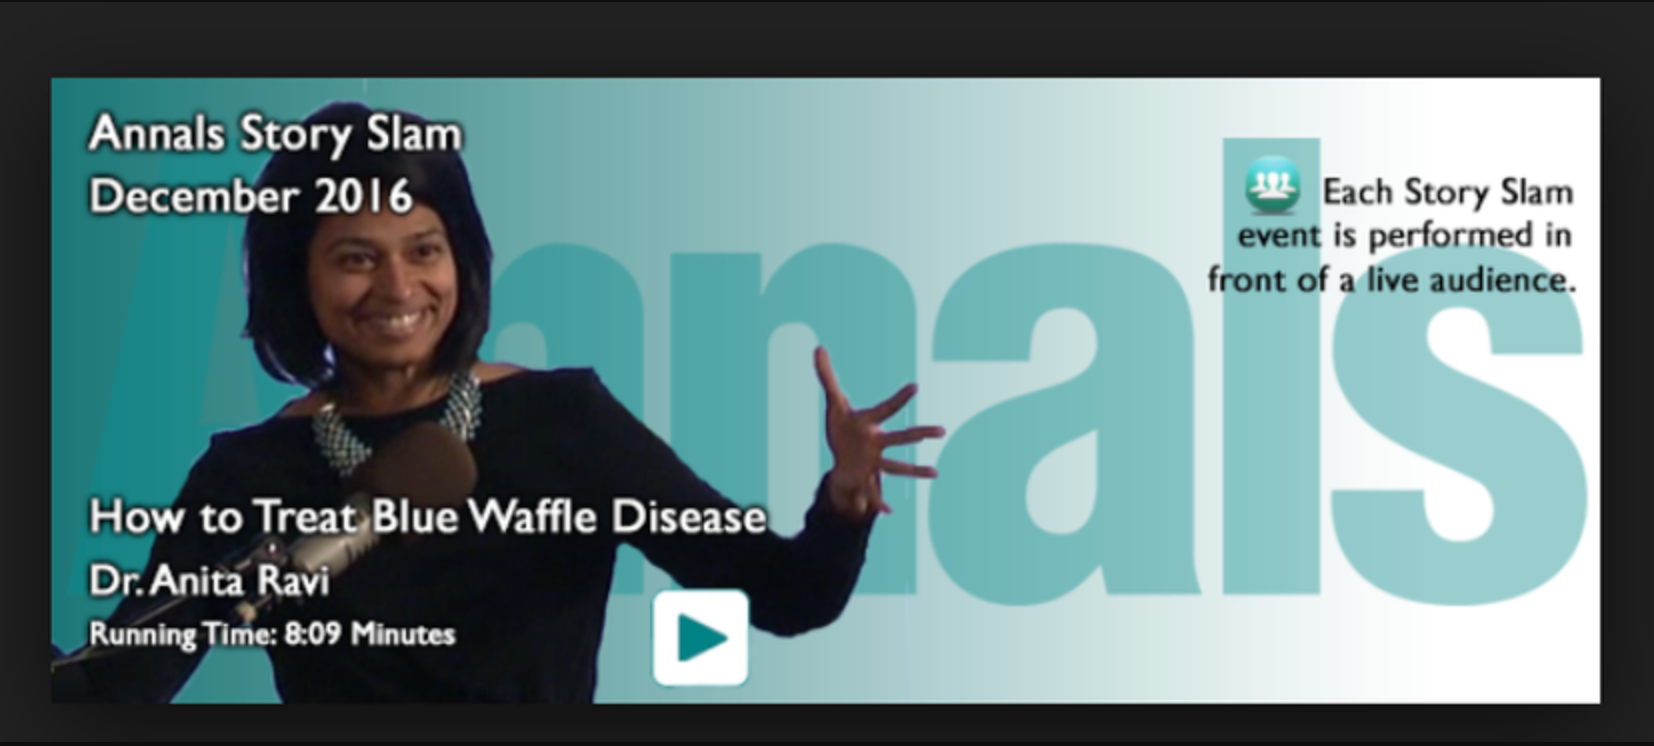 """WHYY/Annals of Internal Medicine Story Slam - How to Treat Blue Waffle Disease"""